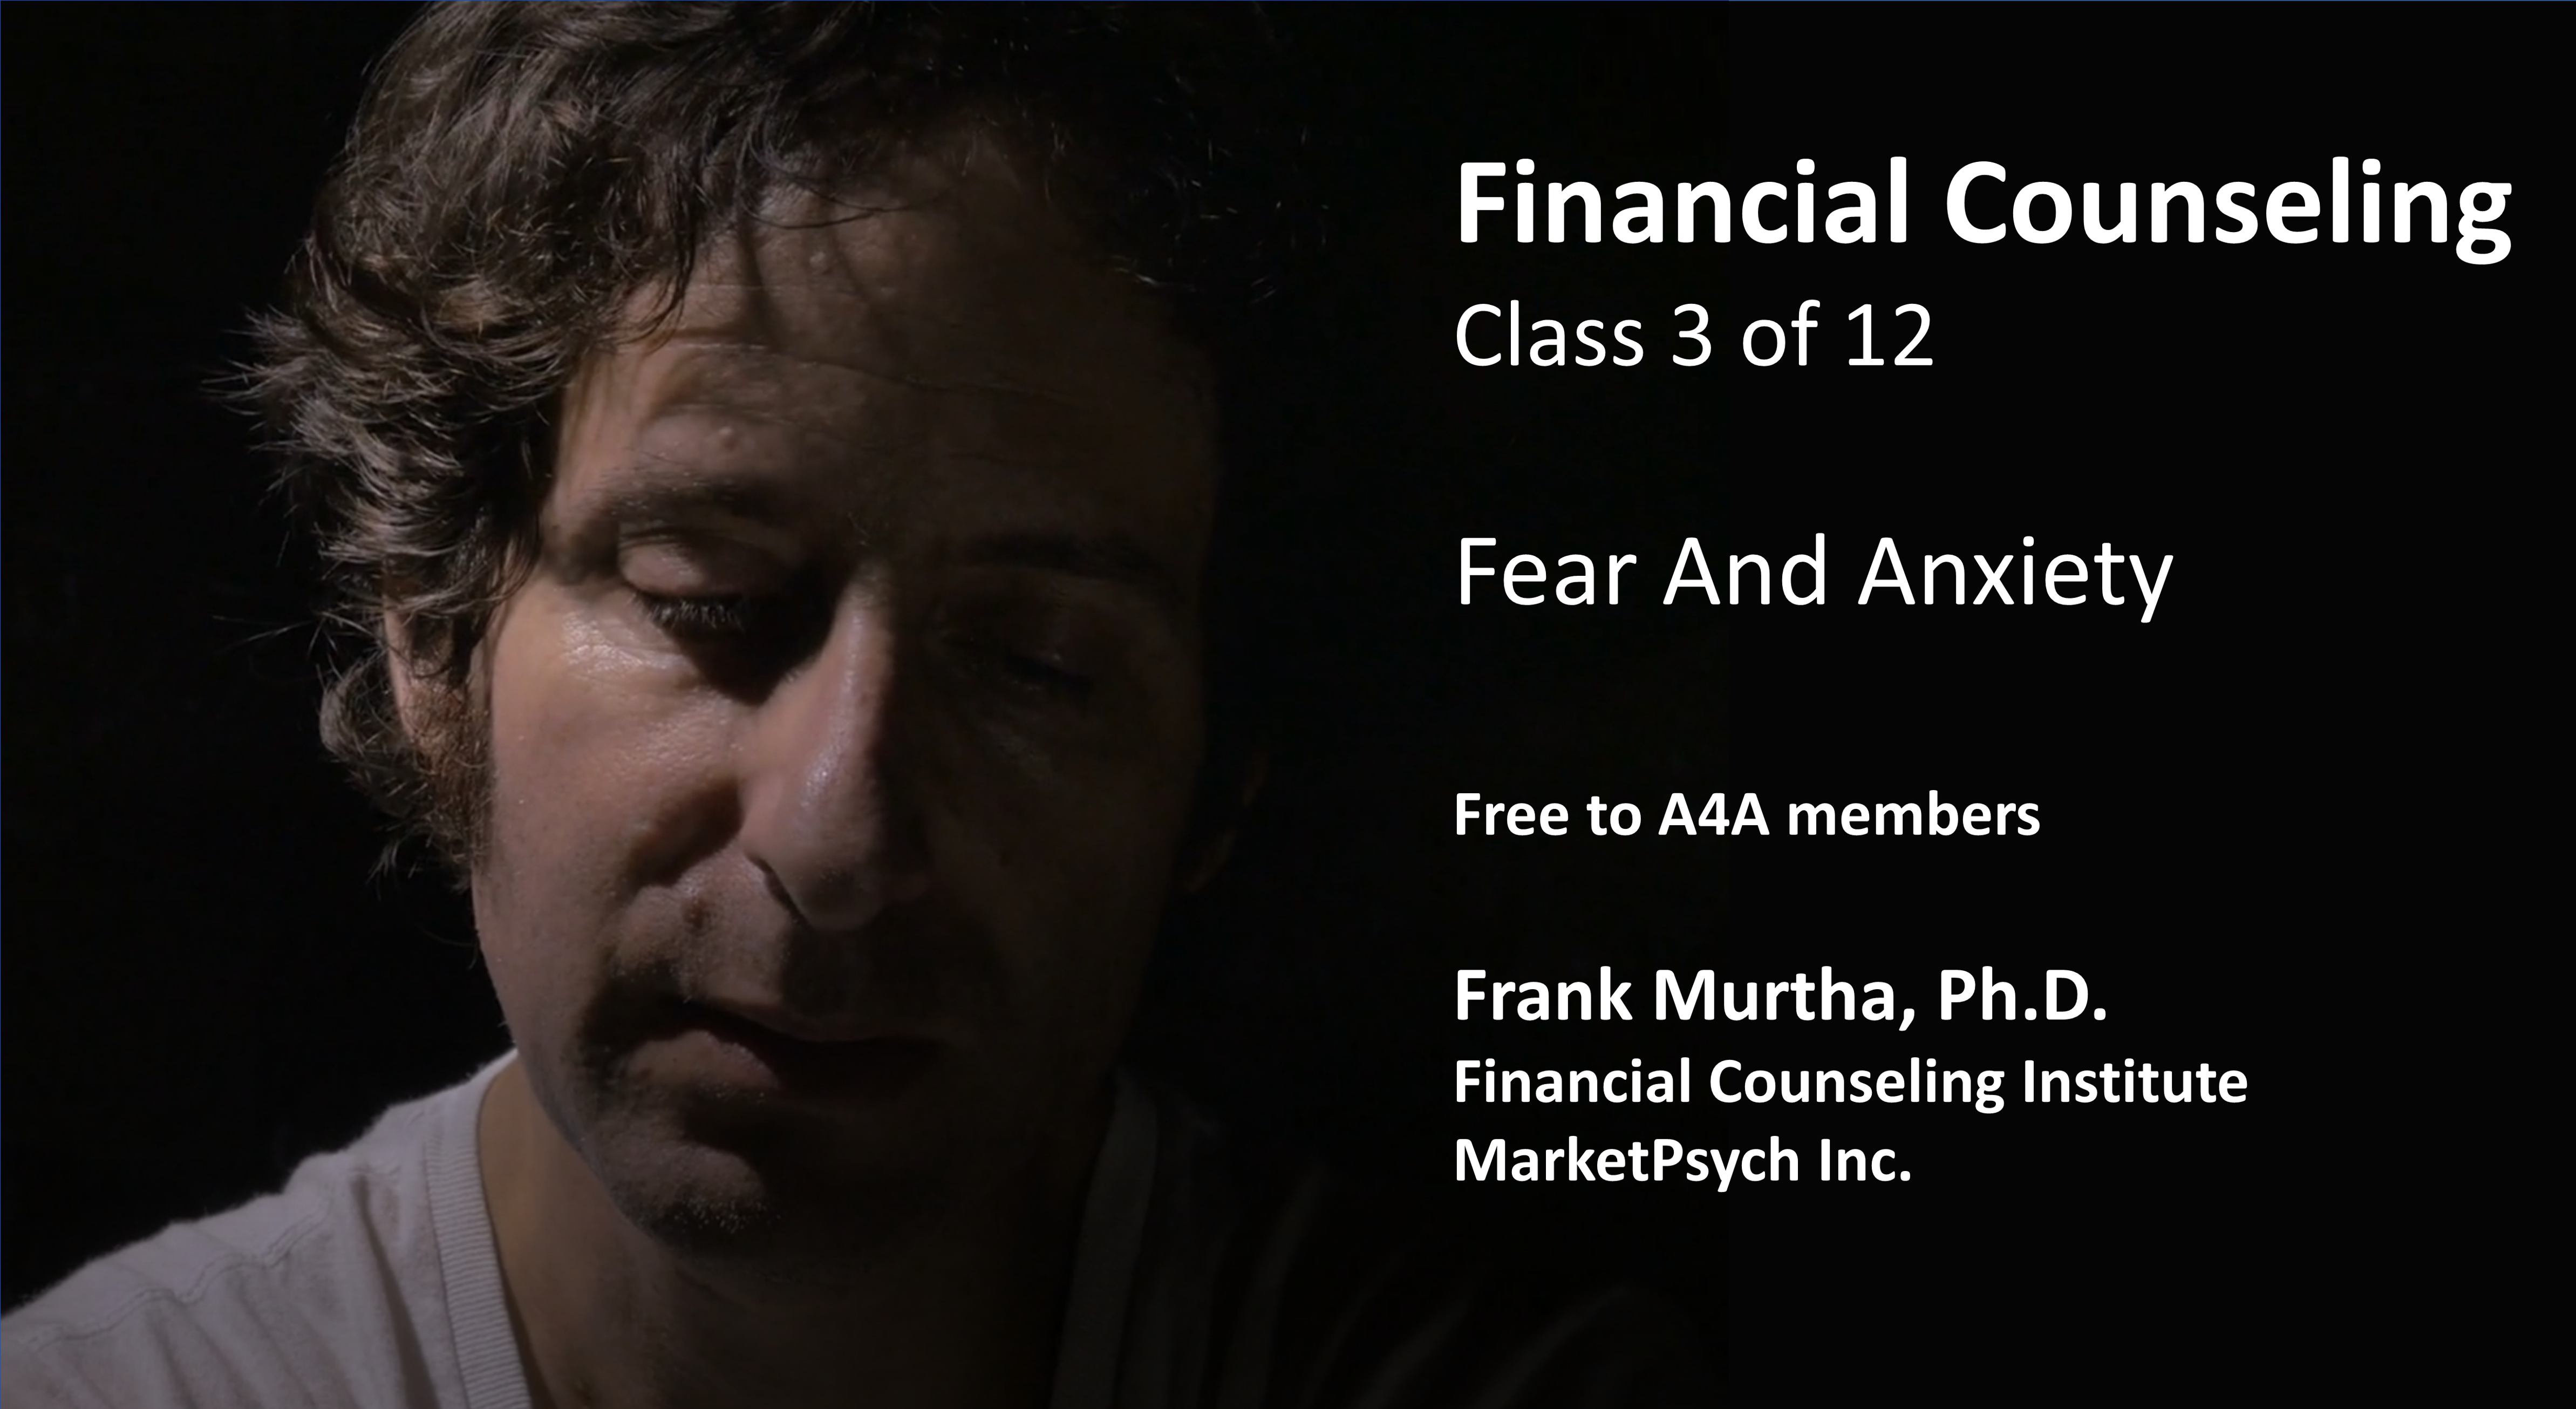 Fear and Anxiety, Class 3 of 12-Credit Financial Counseling CE Course (1 Credit)